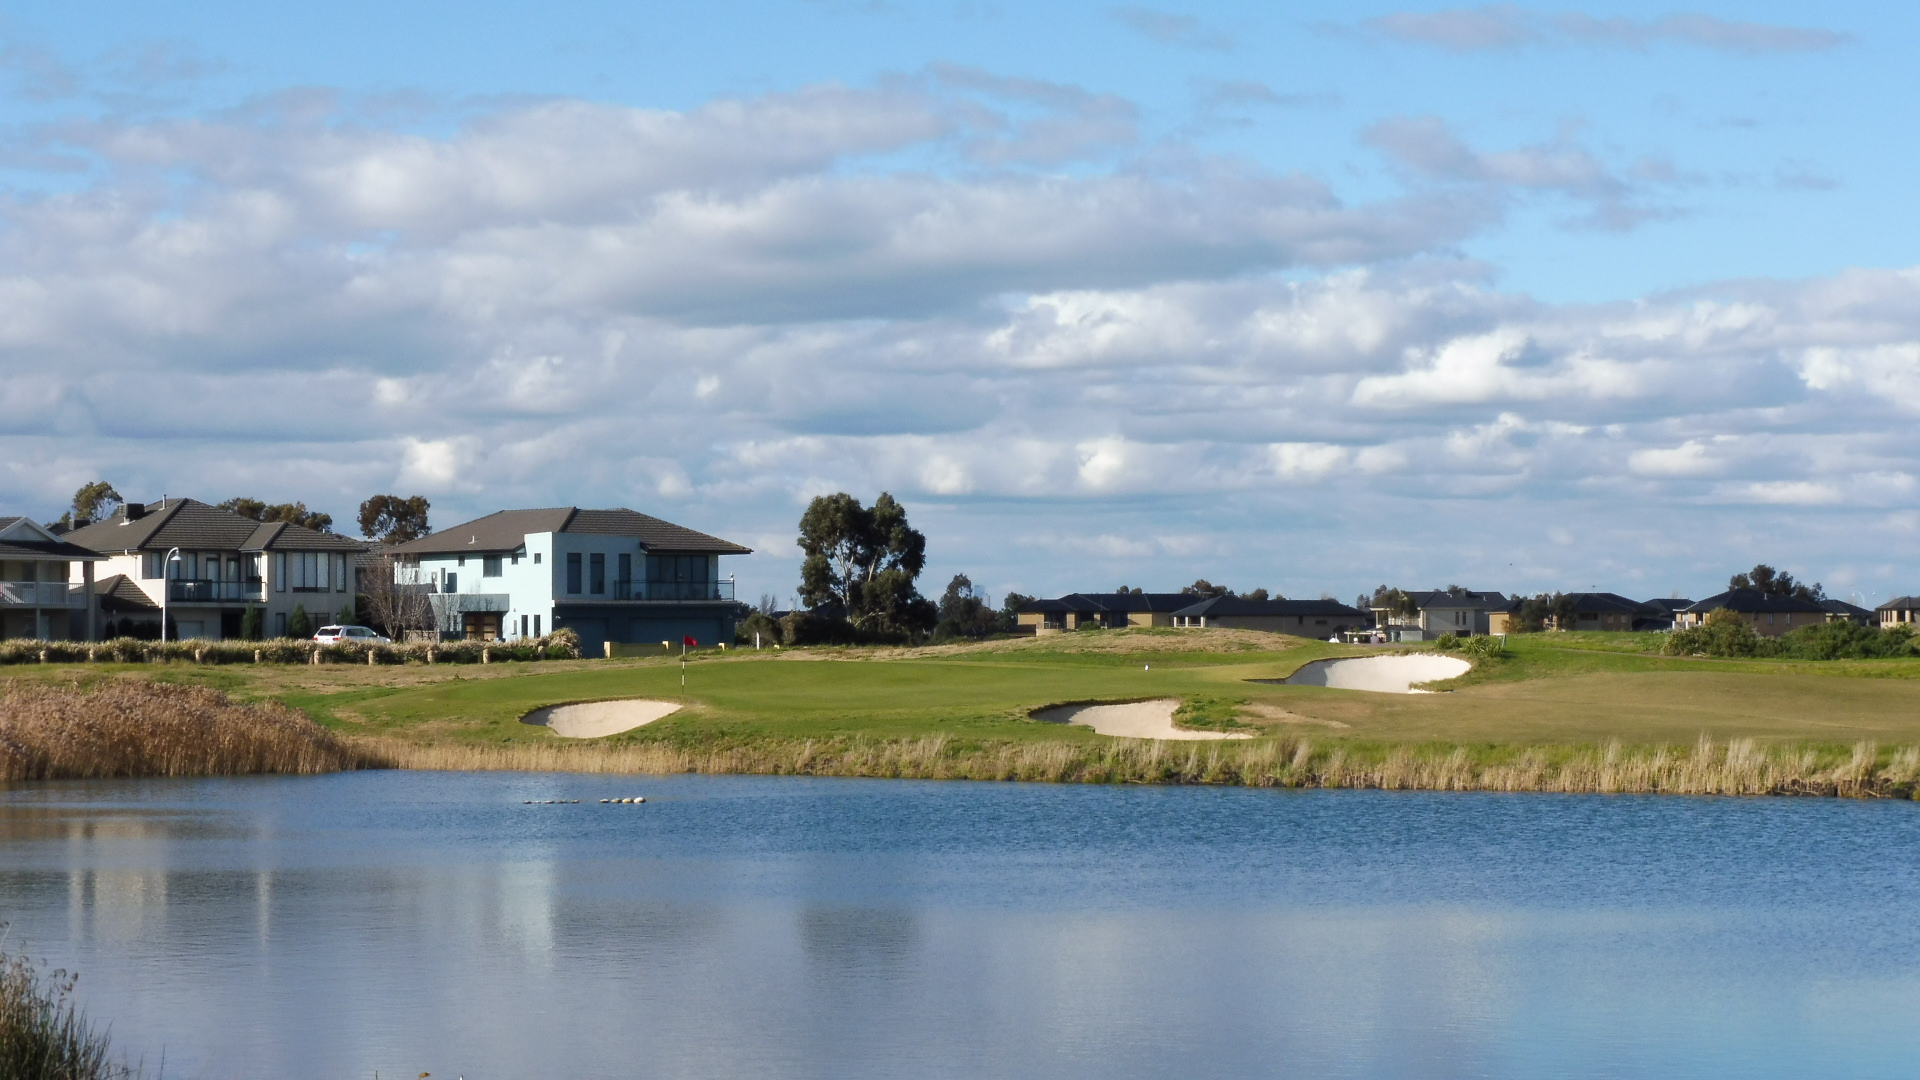 The 6th tee at Sanctuary Lakes Golf Club